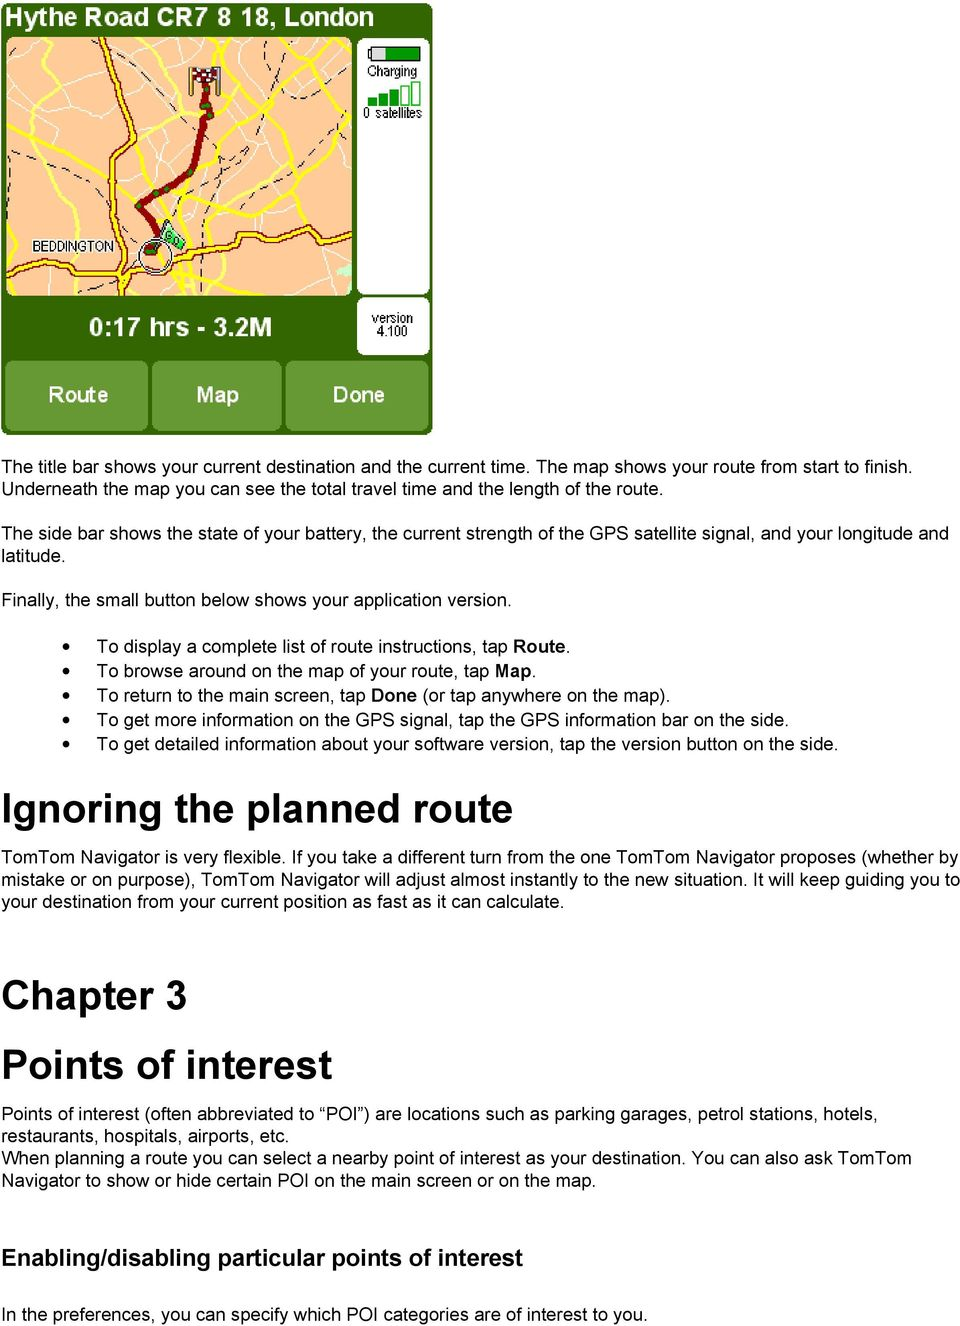 To display a complete list of route instructions, tap Route. To browse around on the map of your route, tap Map. To return to the main screen, tap Done (or tap anywhere on the map).